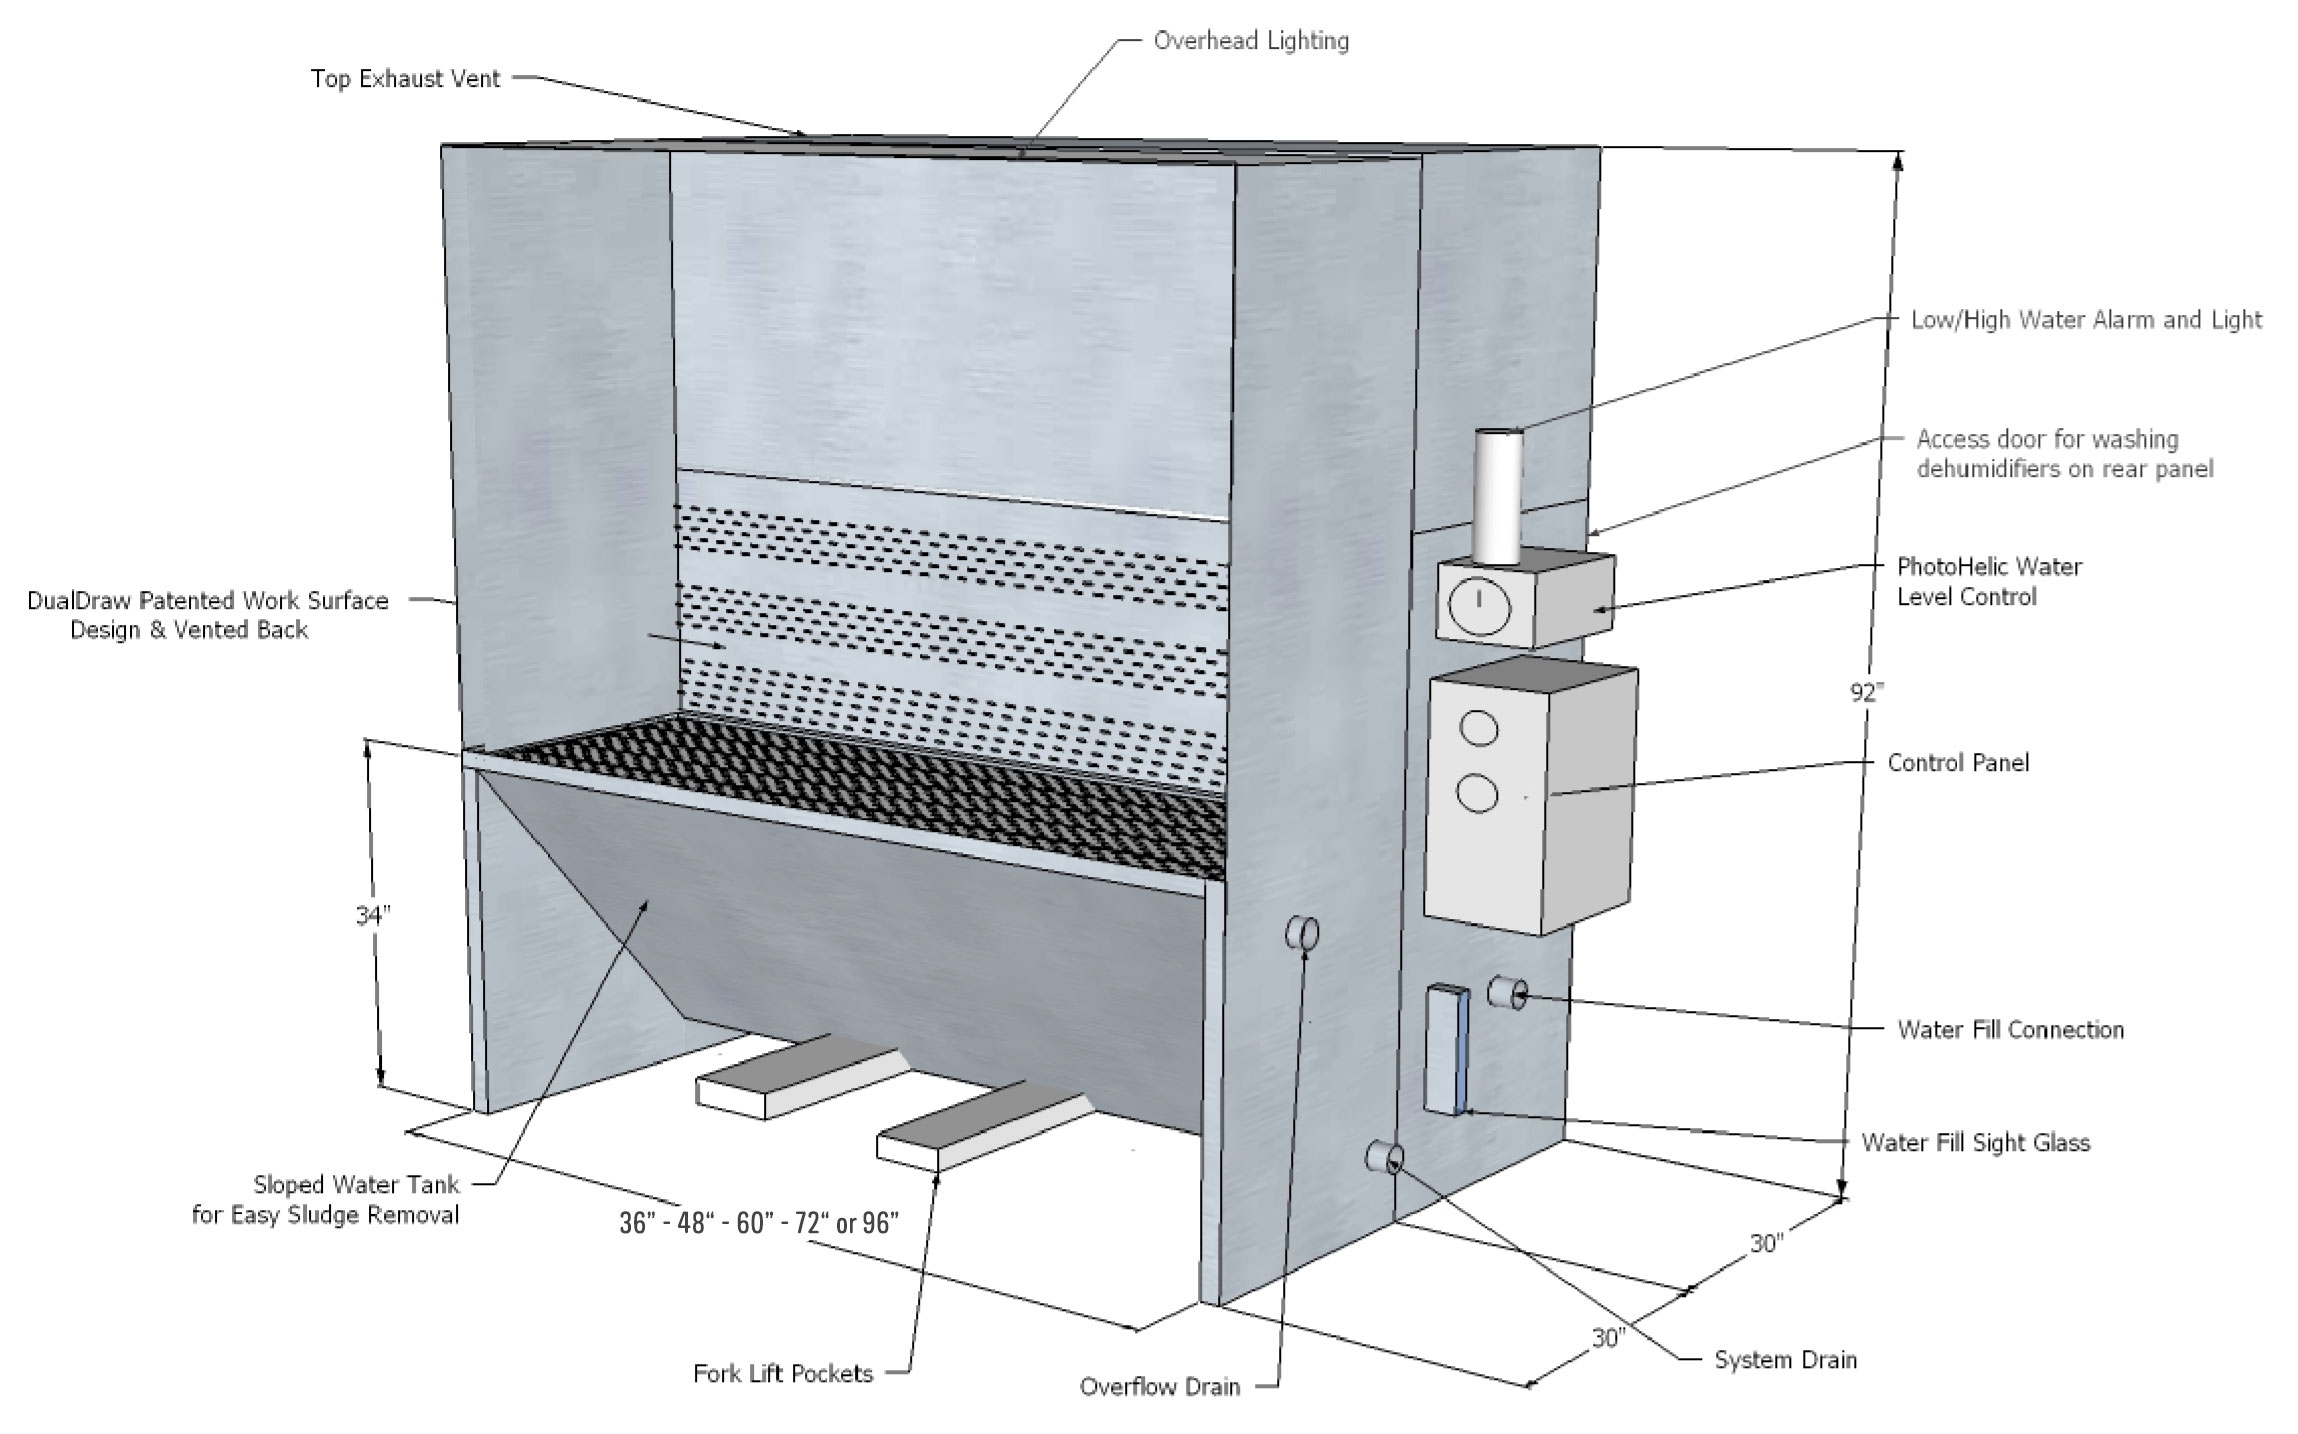 Vented-back Wet Downdraft Booth Technical Drawing